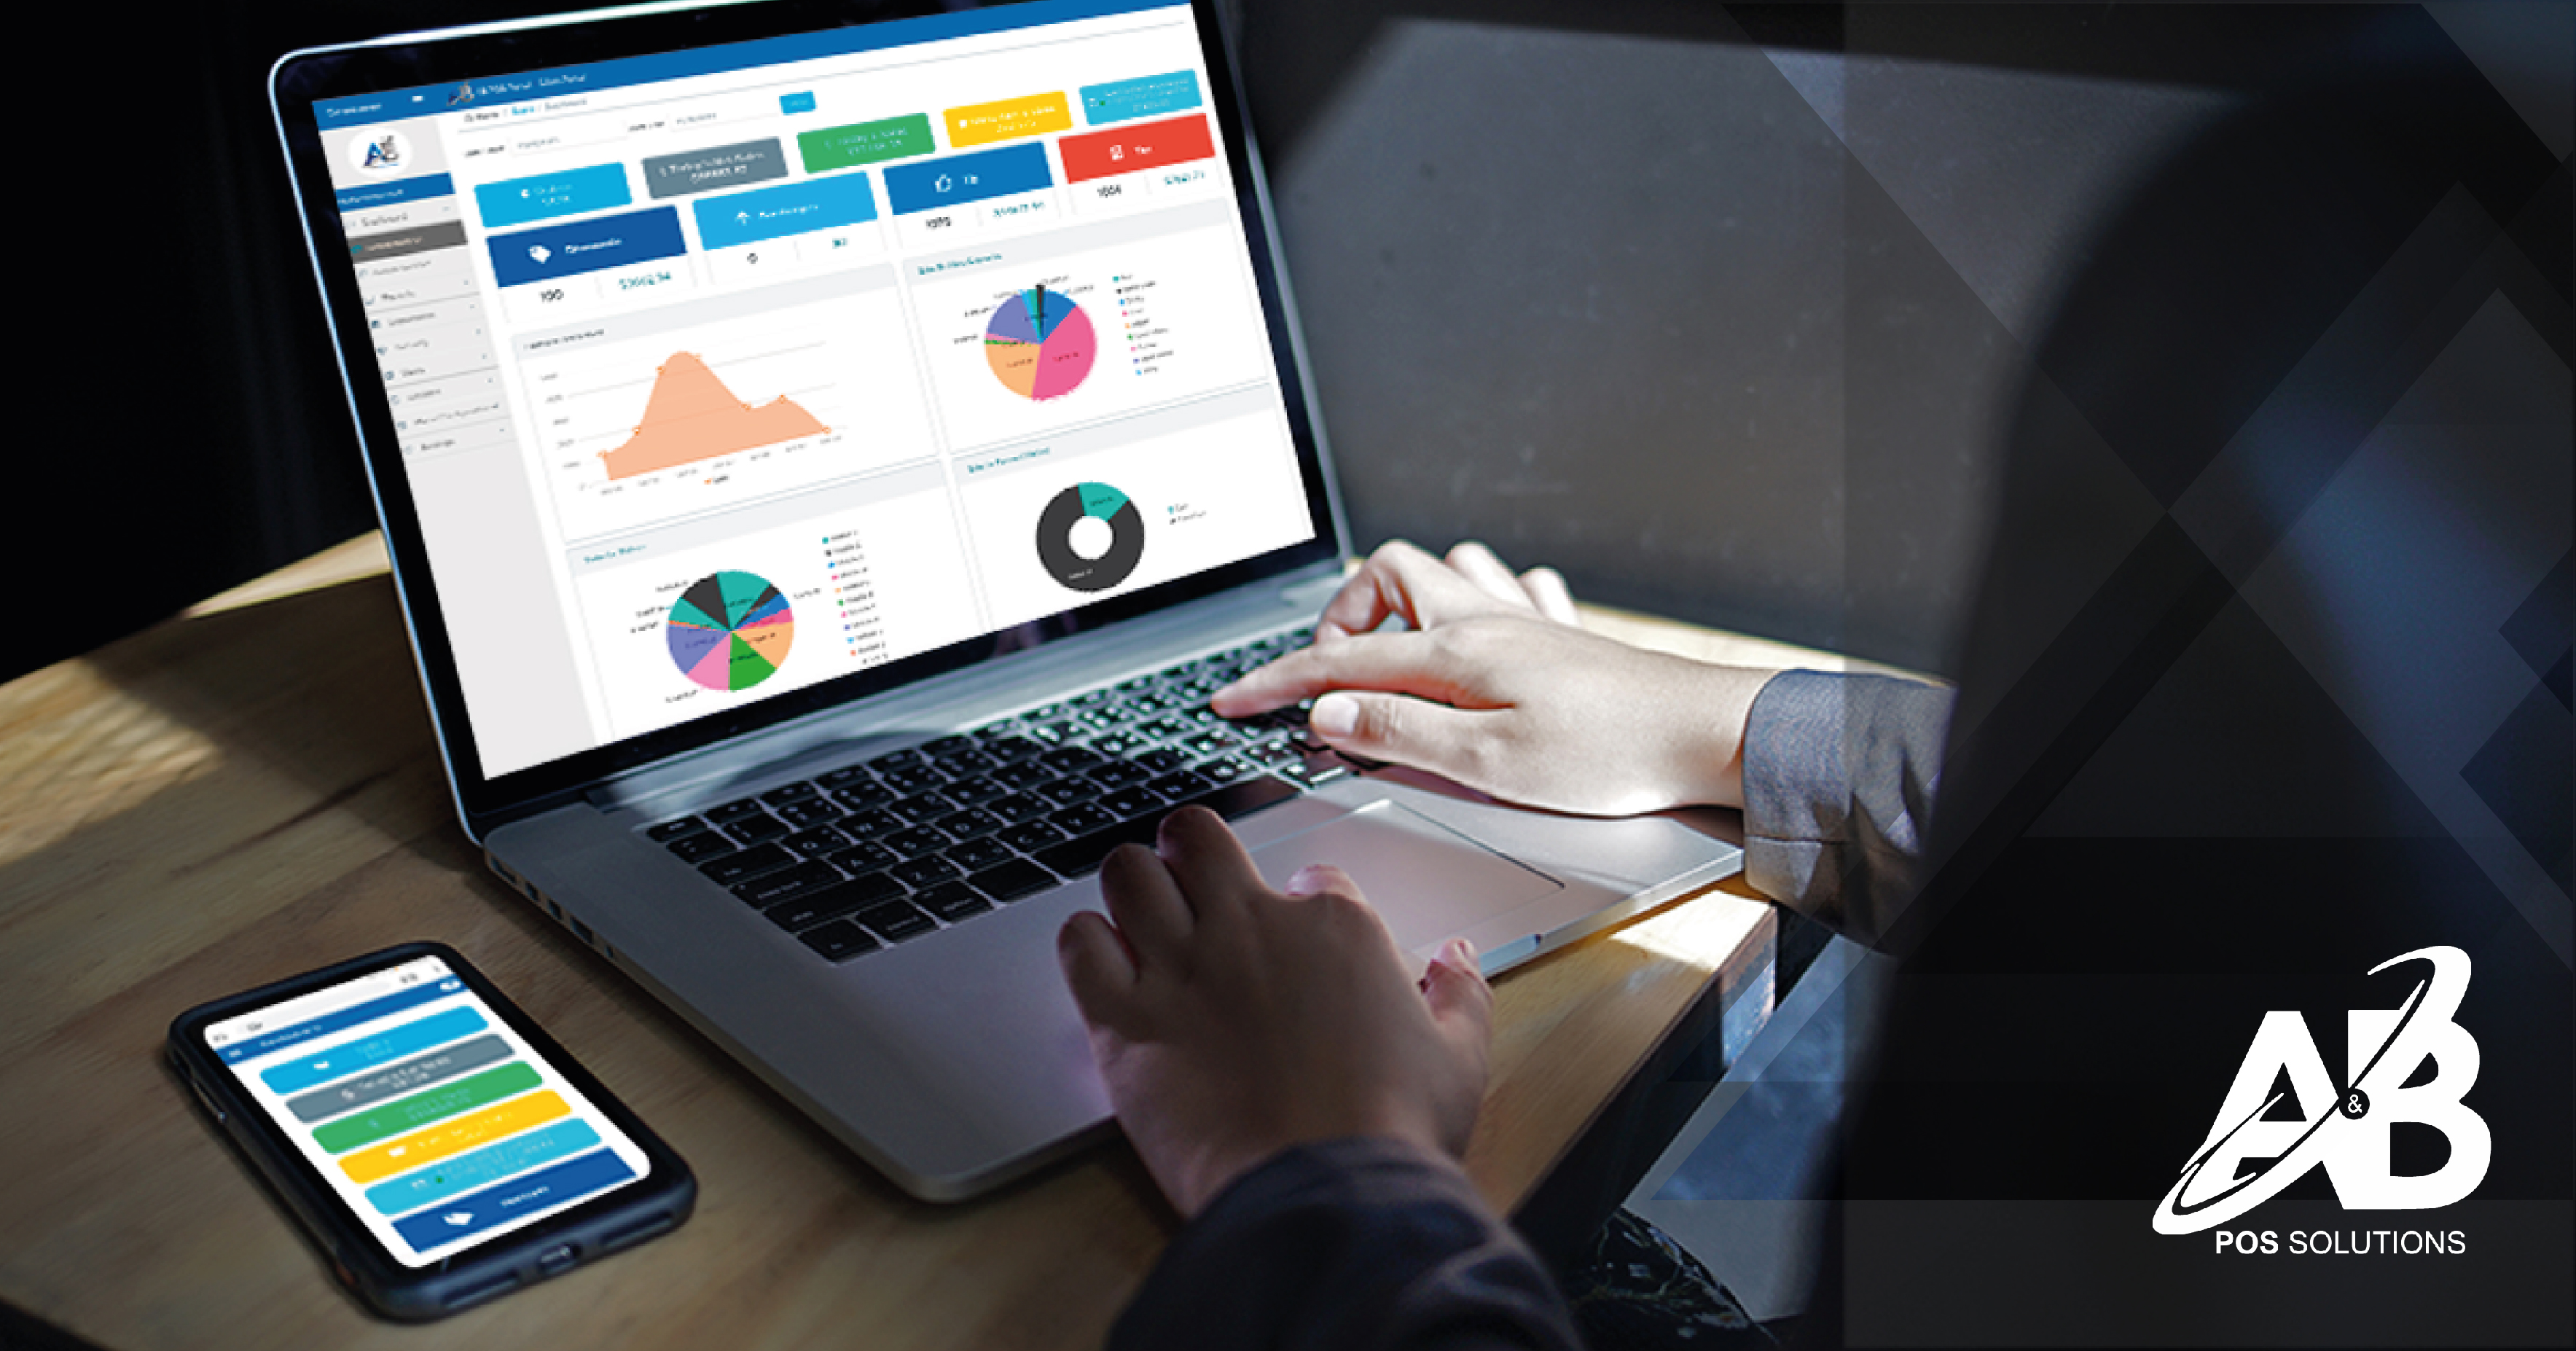 THE BENEFIT OF REAL-TIME DATA AND HOW IT AFFECTS YOUR BUSINESS